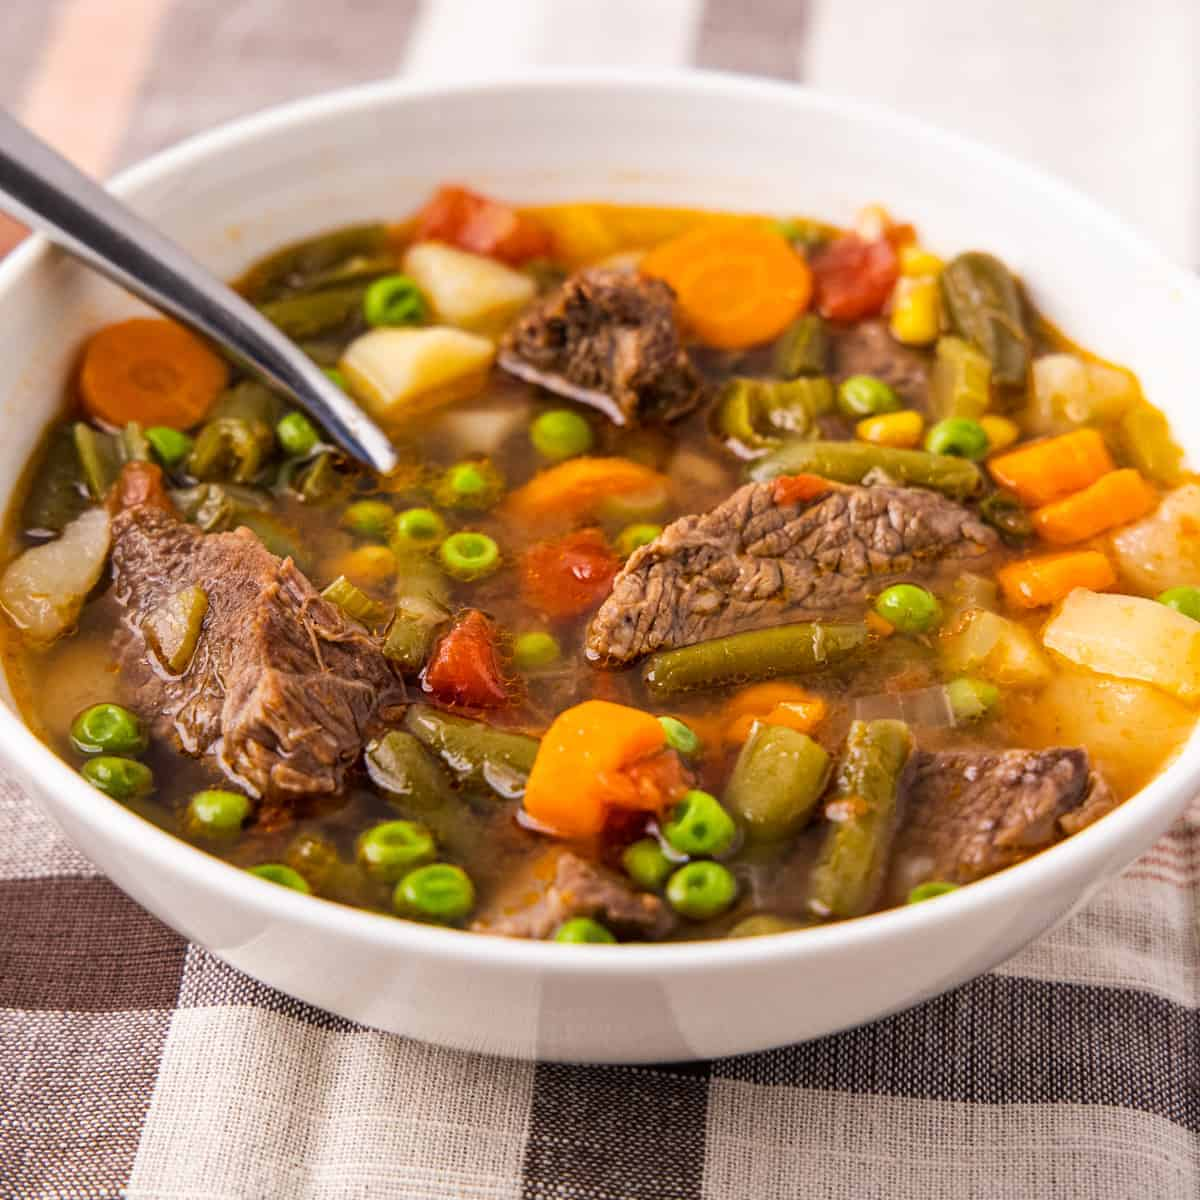 Side angle view of a bowl of vegetable beef soup served in a bowl on a plaid tablecloth.